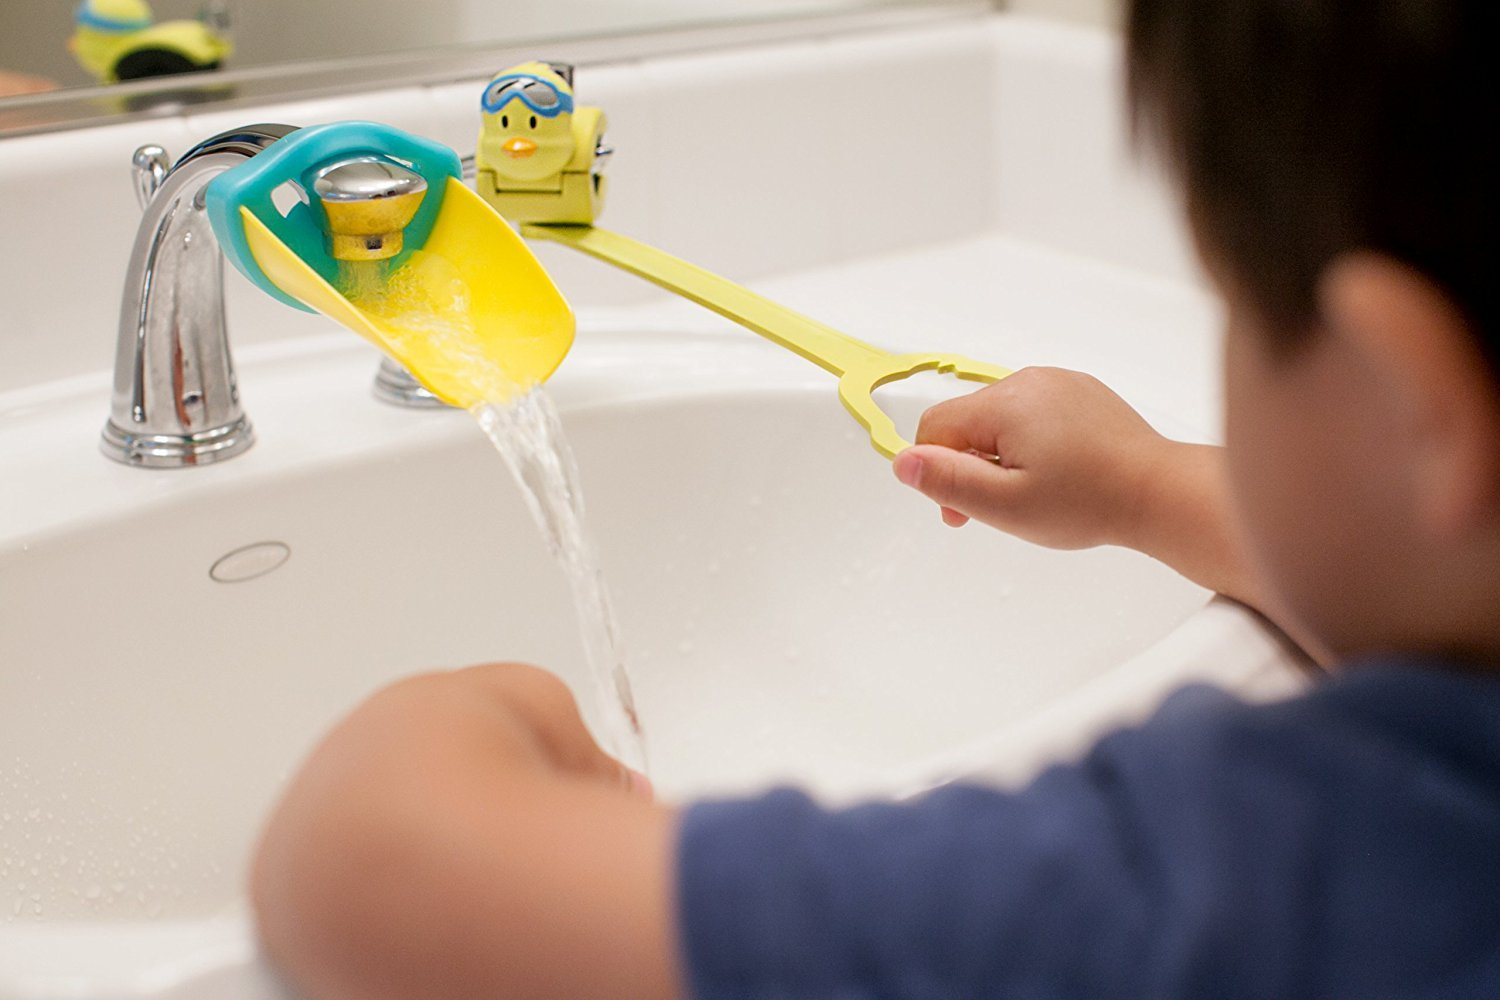 Aqueduck Faucet Handle Extender Set. Connects to Sink Handle and Faucet to Make Washing Hands Fun and Teaches Your Baby or Child Good Habits and Promote Independence to them. by Aqueduck (Image #2)